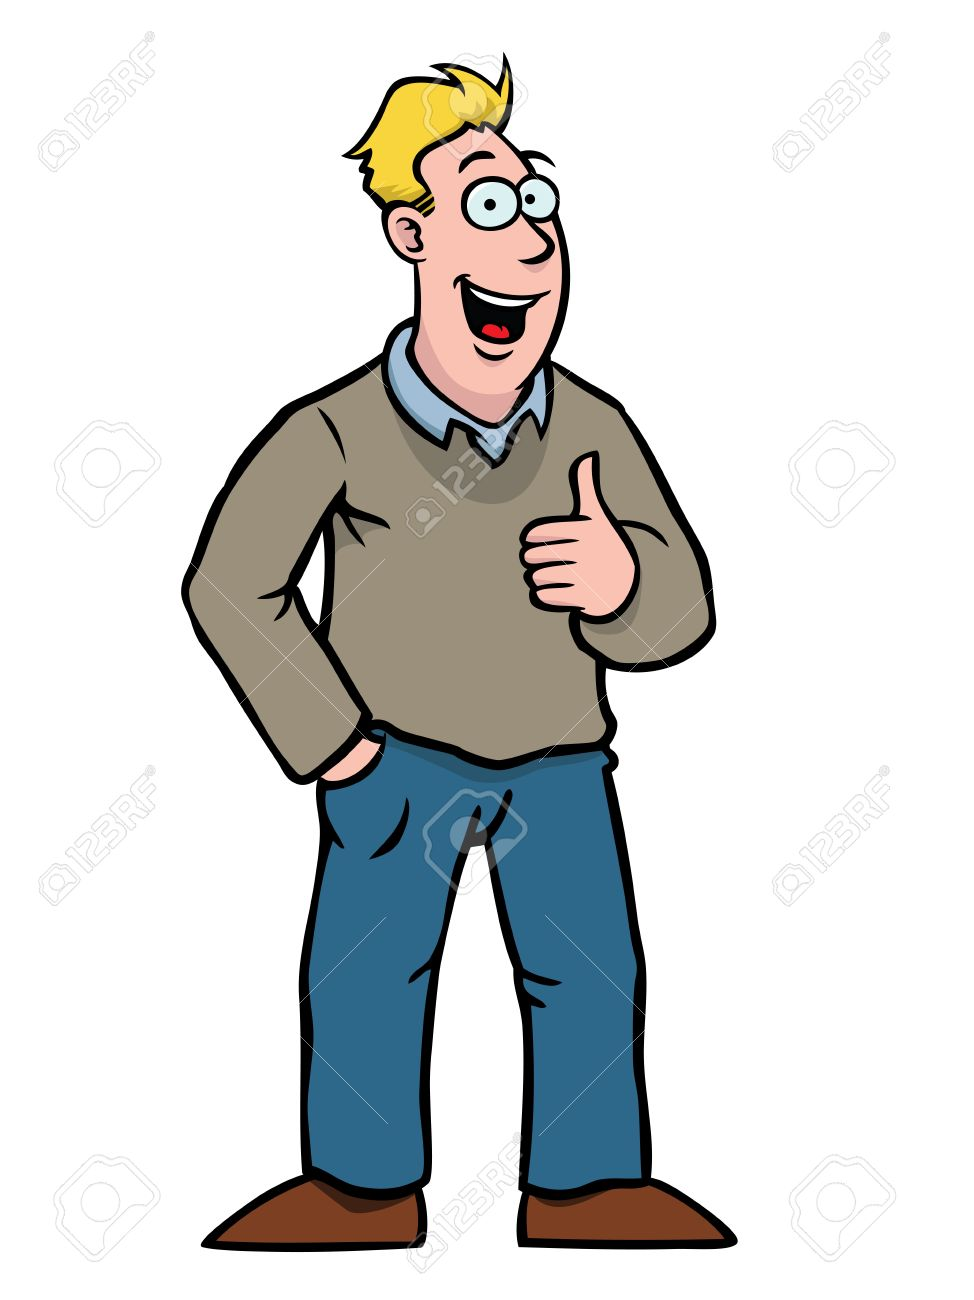 Man With Thumbs Up Royalty Free Cliparts, Vectors, And Stock.